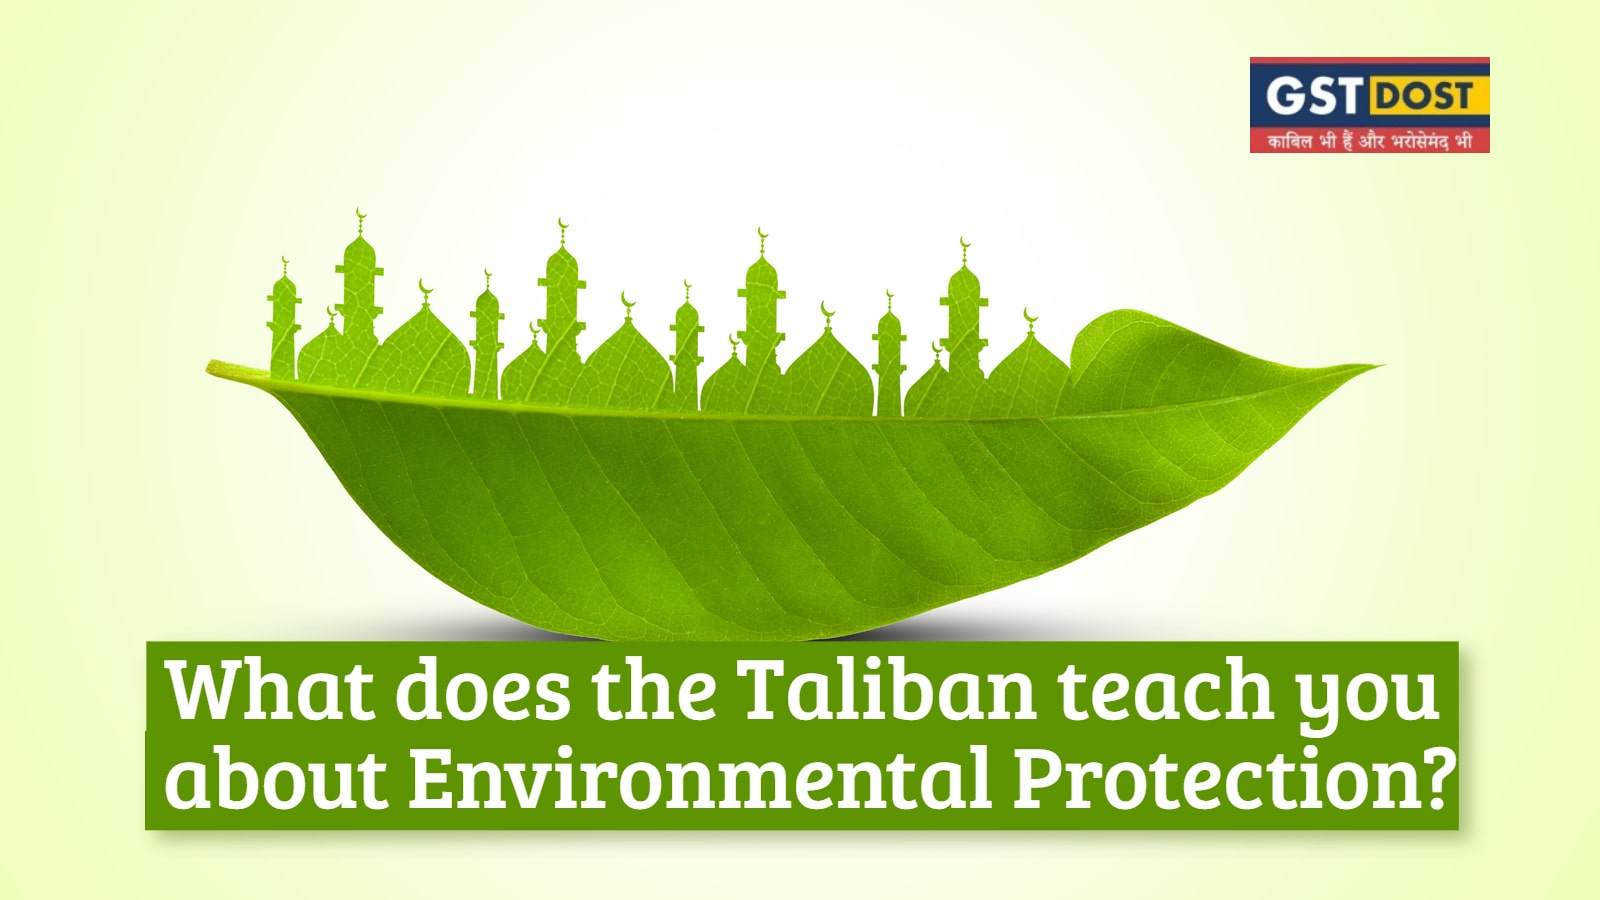 What does the Taliban teach you about Environmental Protection?